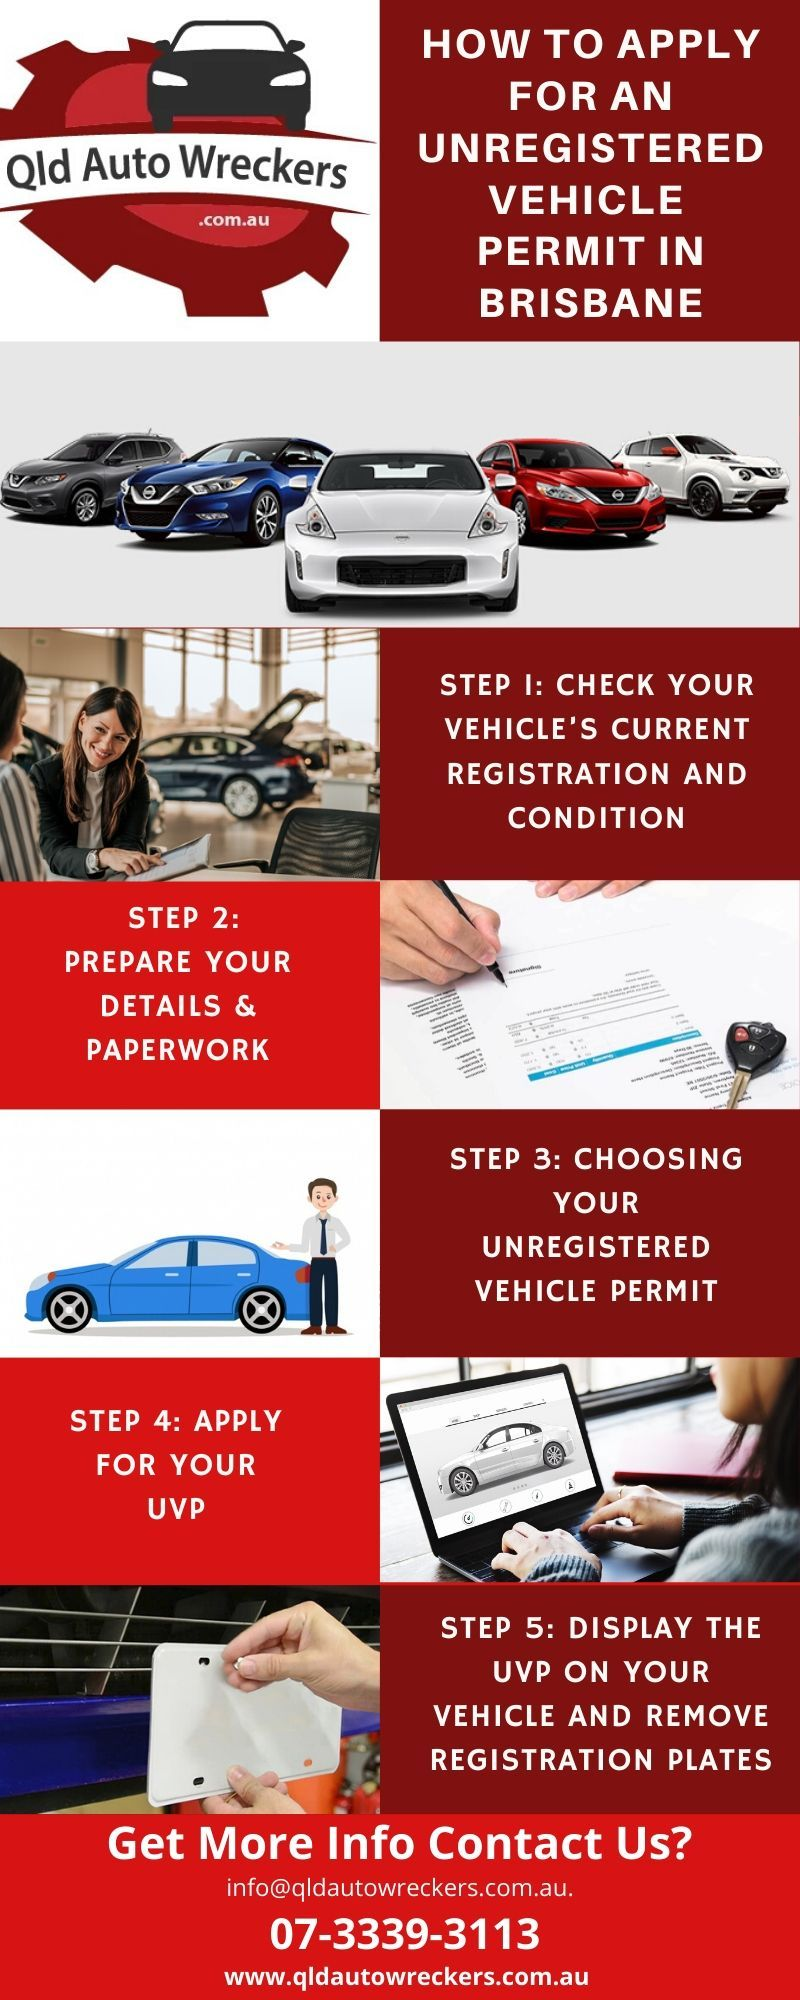 Pin by olivia hayden on auto removals brisbane how to